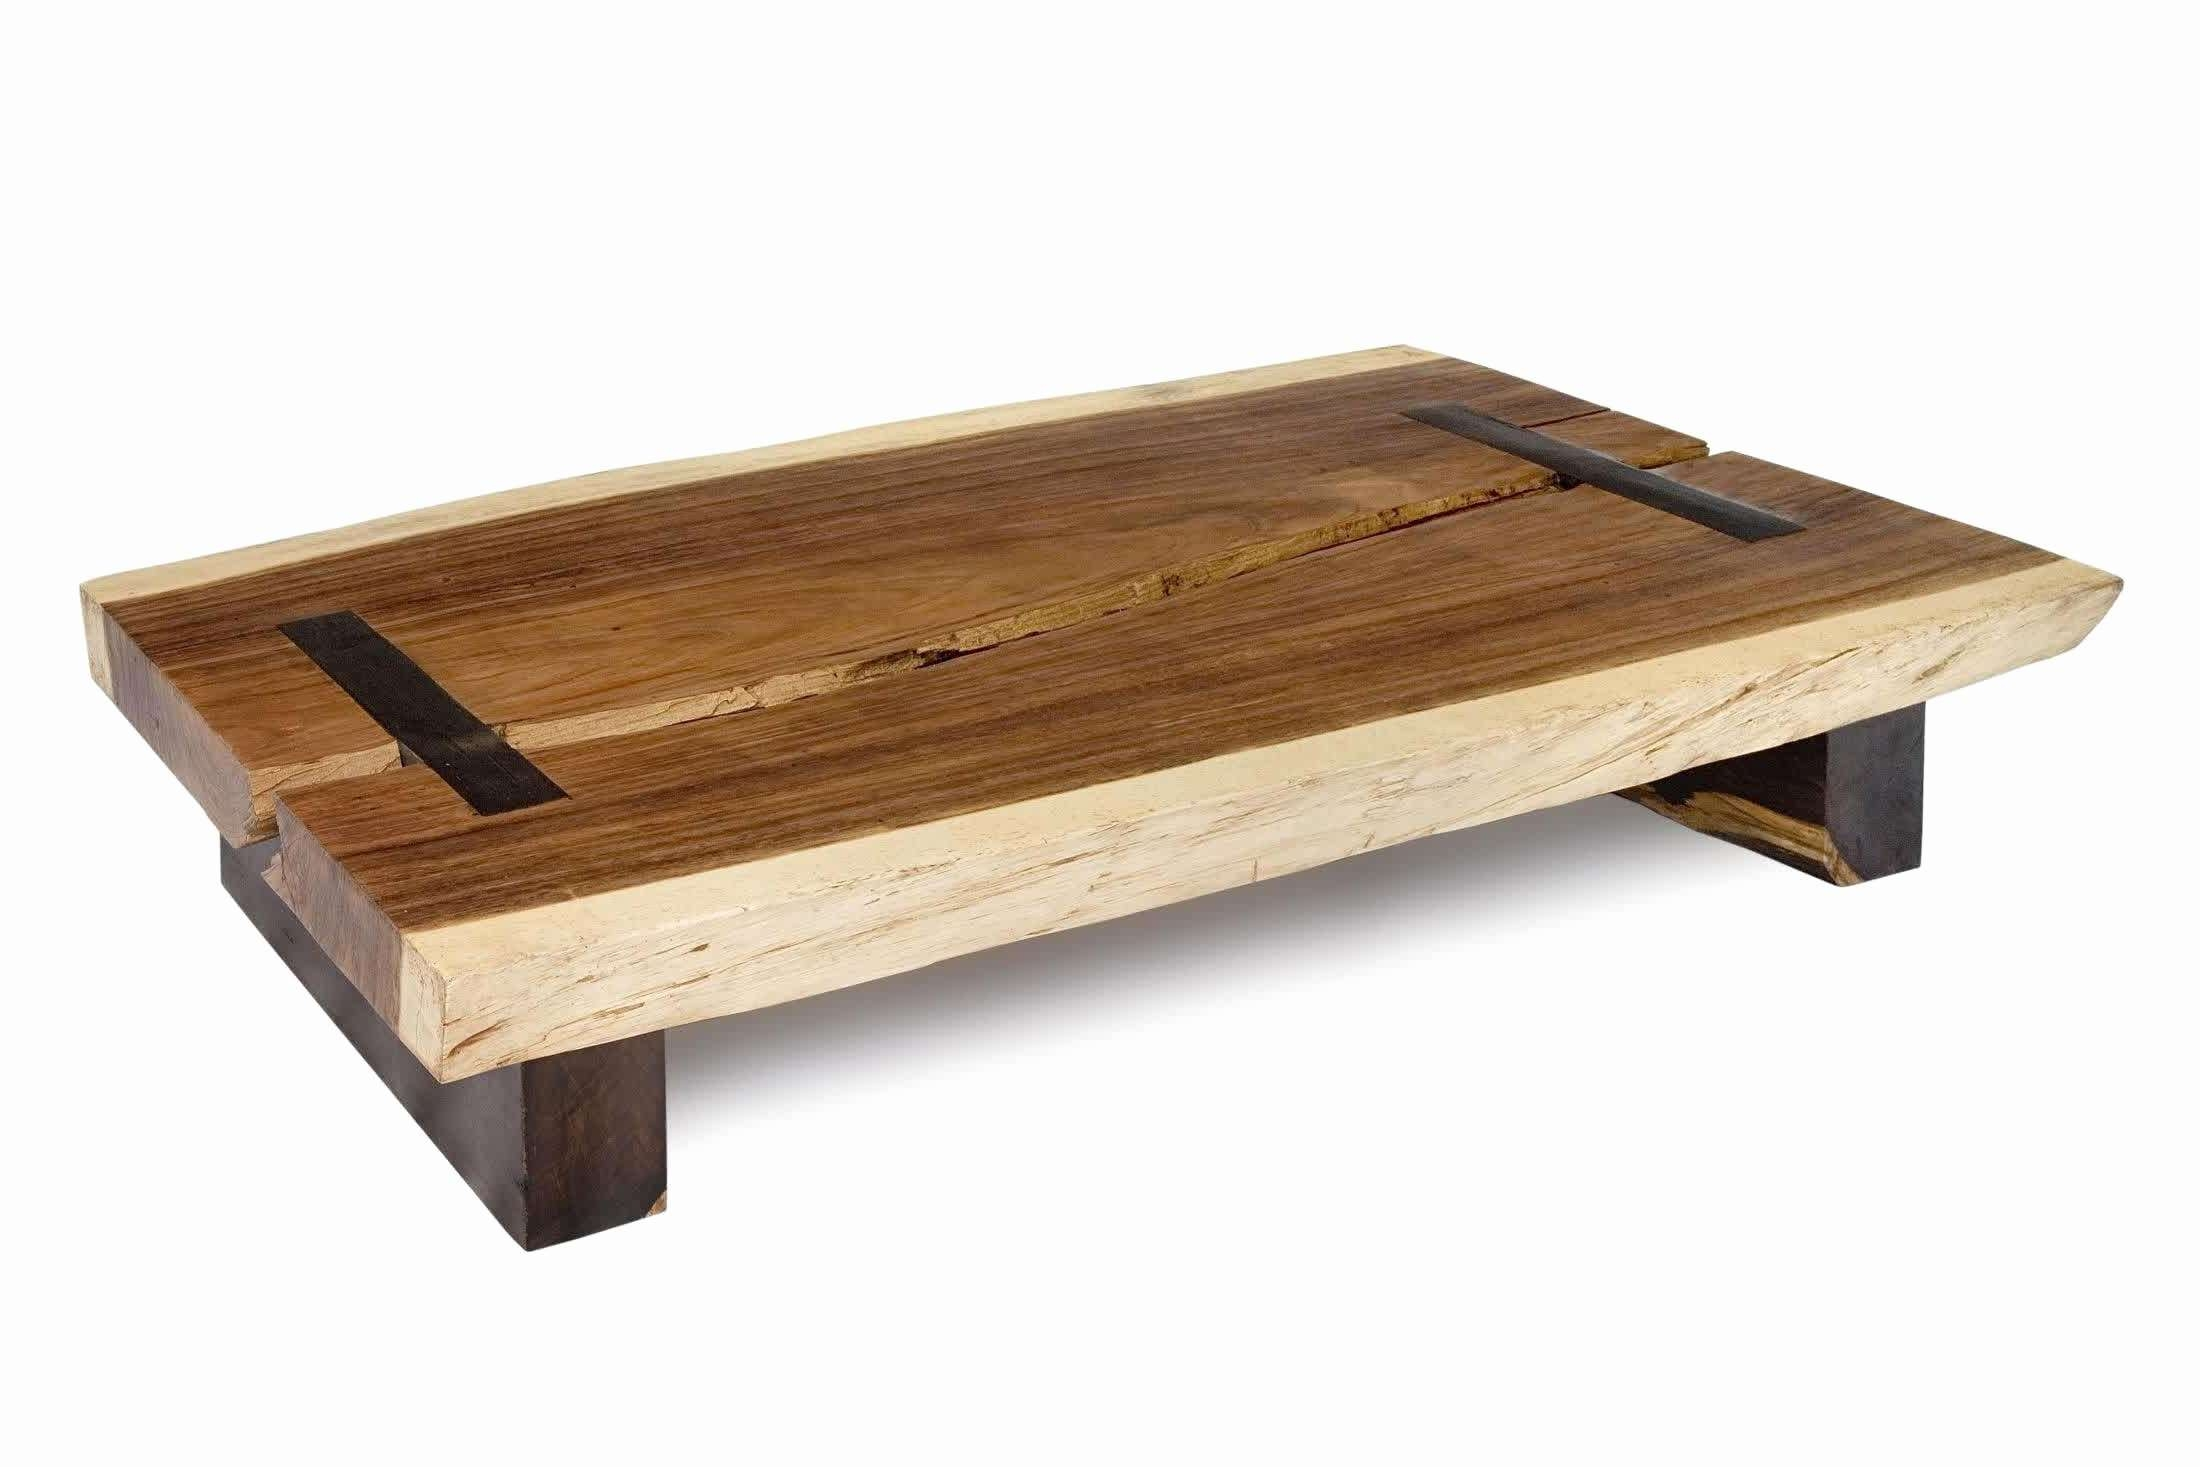 Living Room Tables Big Lots Luxury Coffee Table Amazing Solid Wood Intended For 2017 Large Solid Wood Coffee Tables (View 4 of 20)